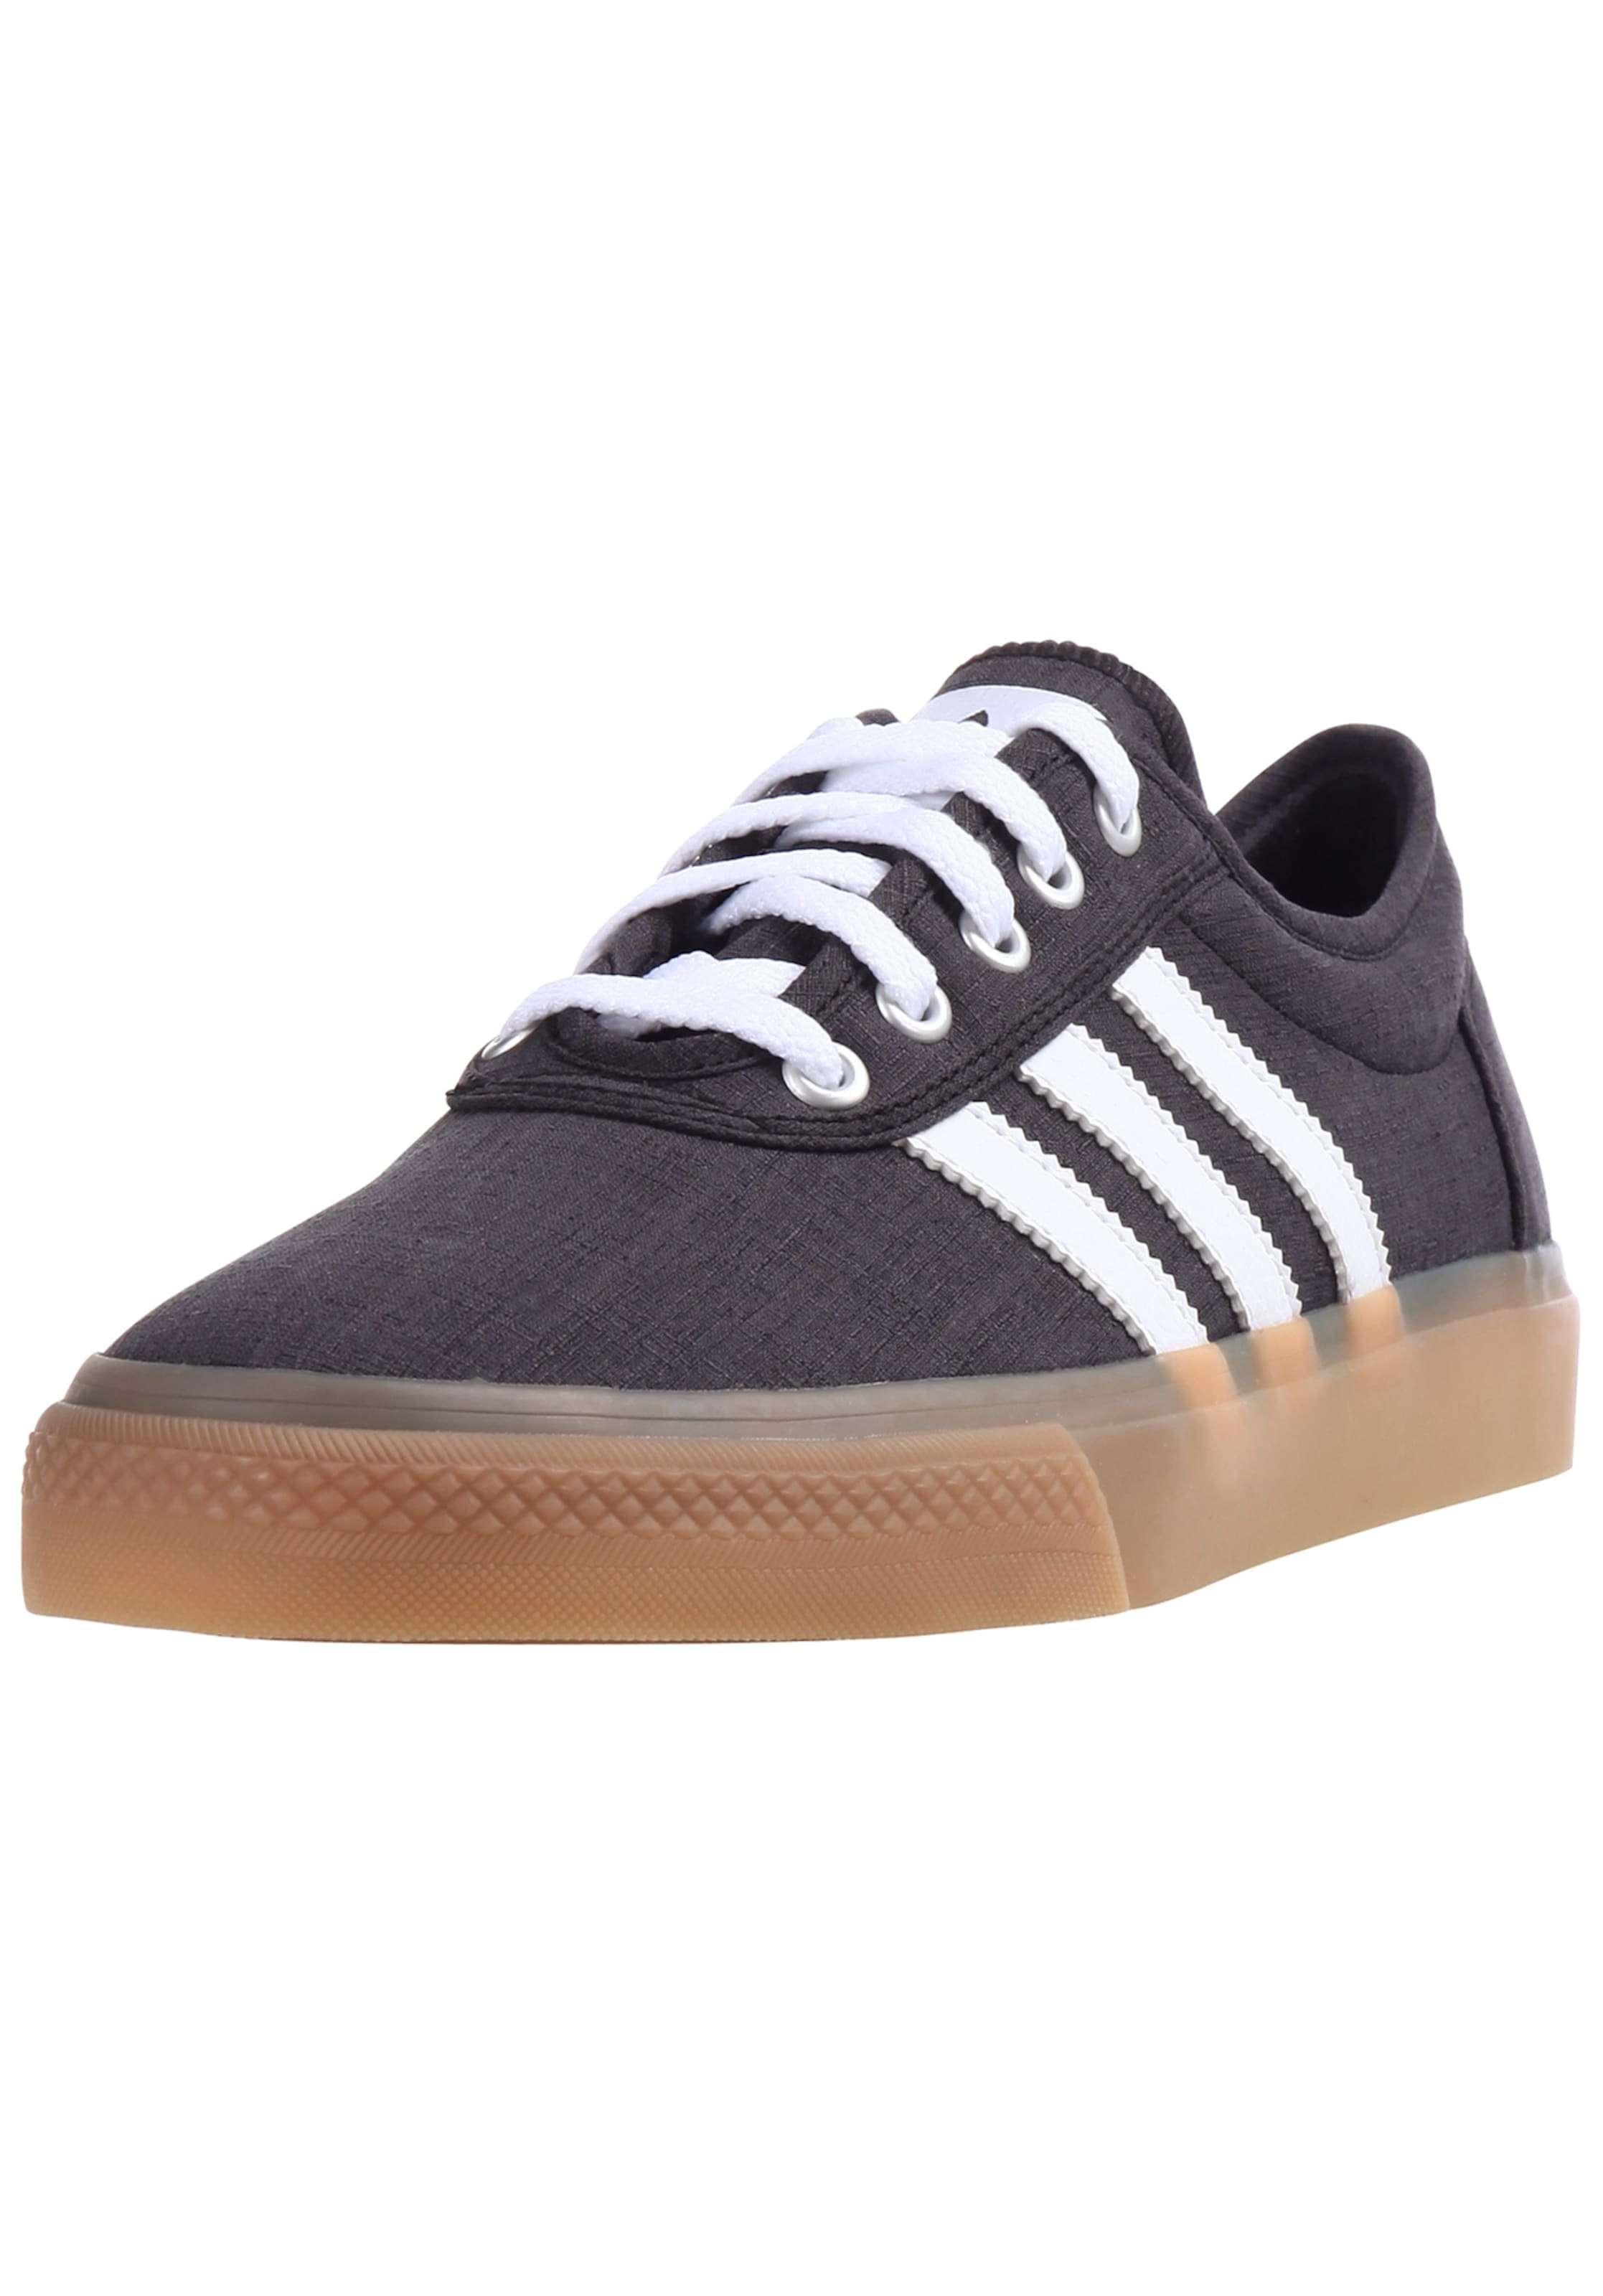 ADIDAS ORIGINALS  Adi-Ease  Sneaker